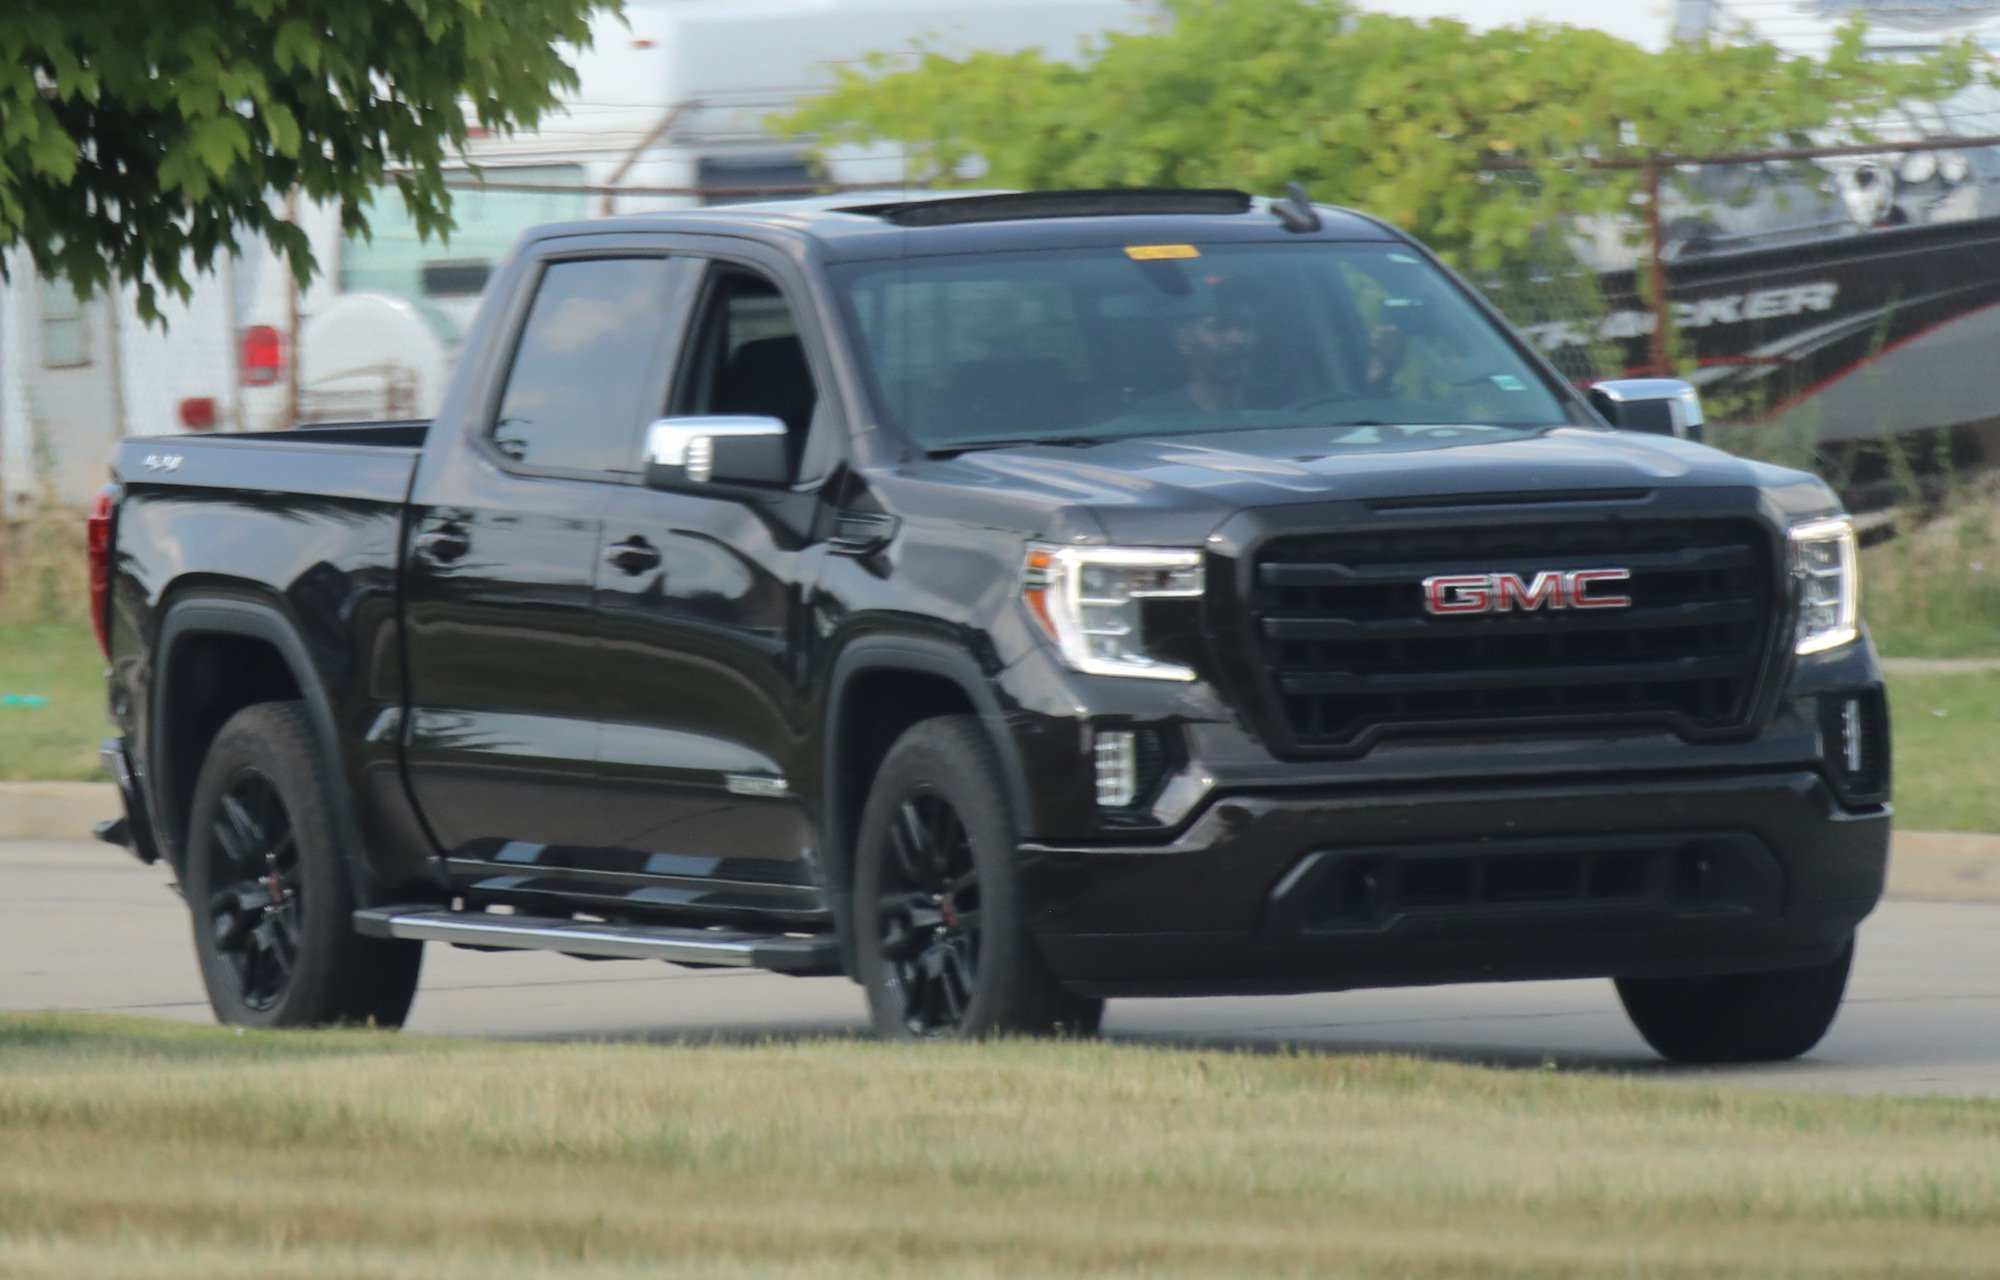 48 The 2019 GMC Sierra Price Design And Review